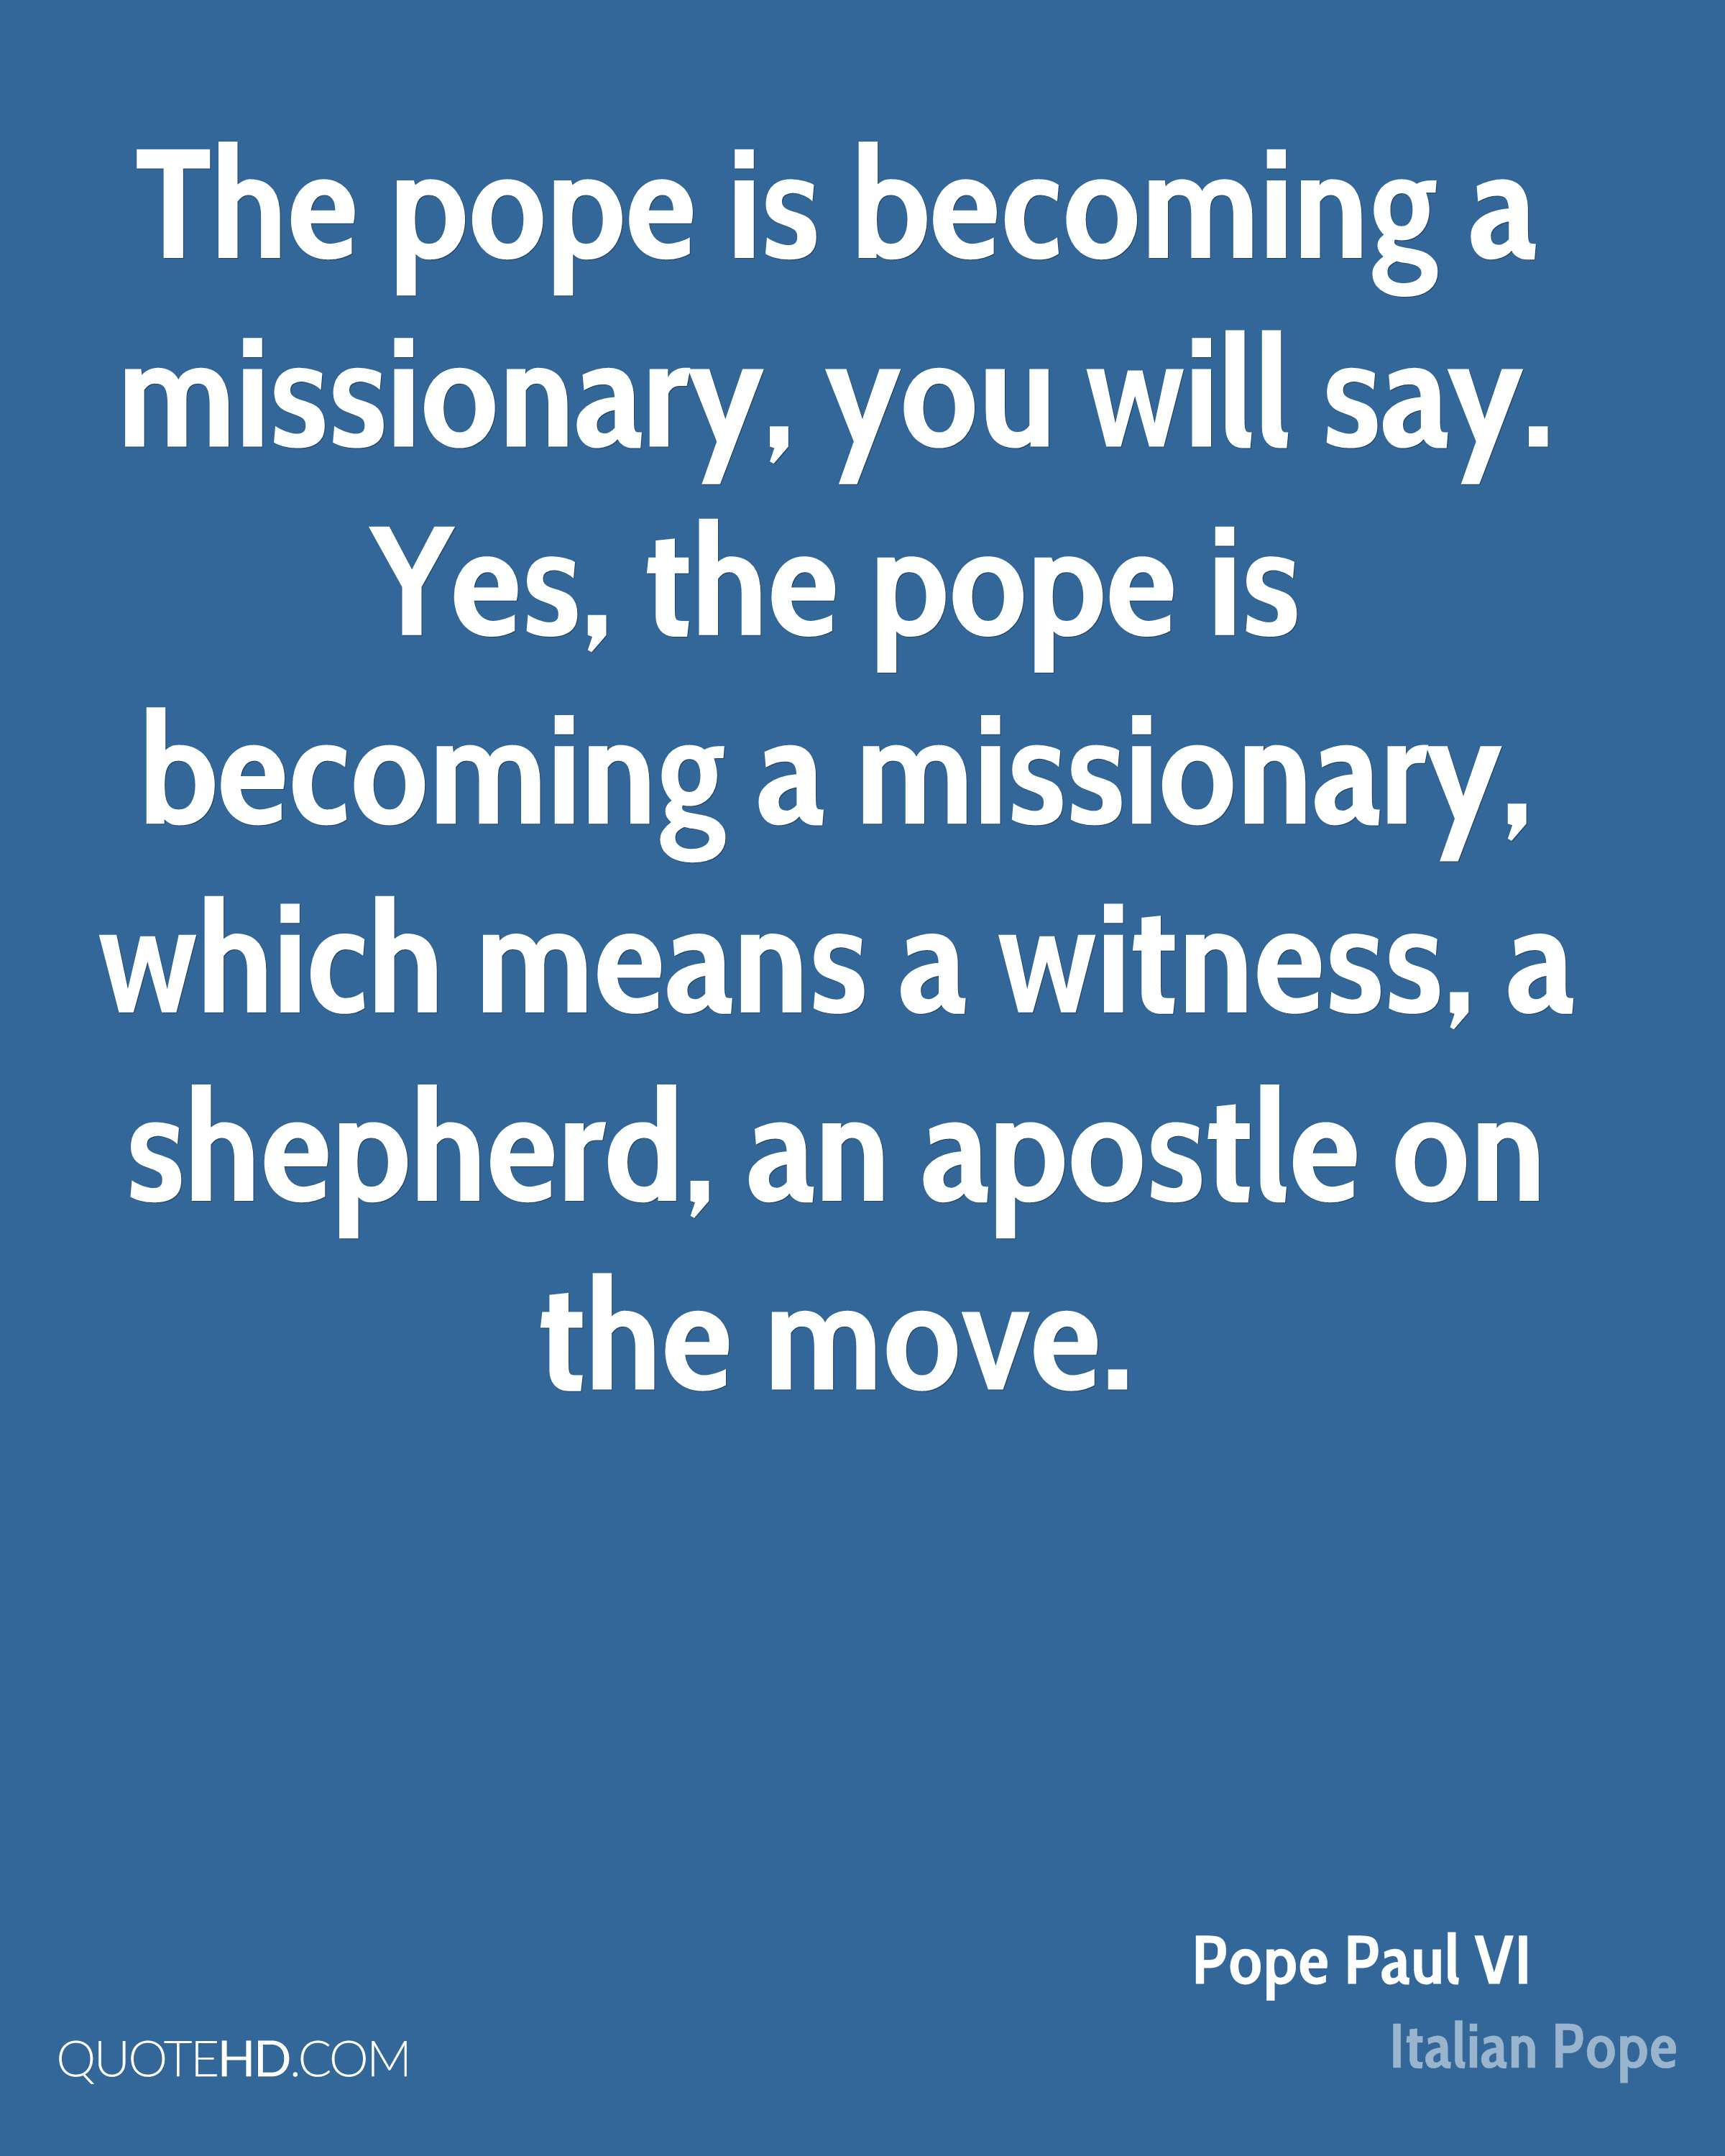 The pope is becoming a missionary, you will say. Yes, the pope is becoming a missionary, which means a witness, a shepherd, an apostle on the move.